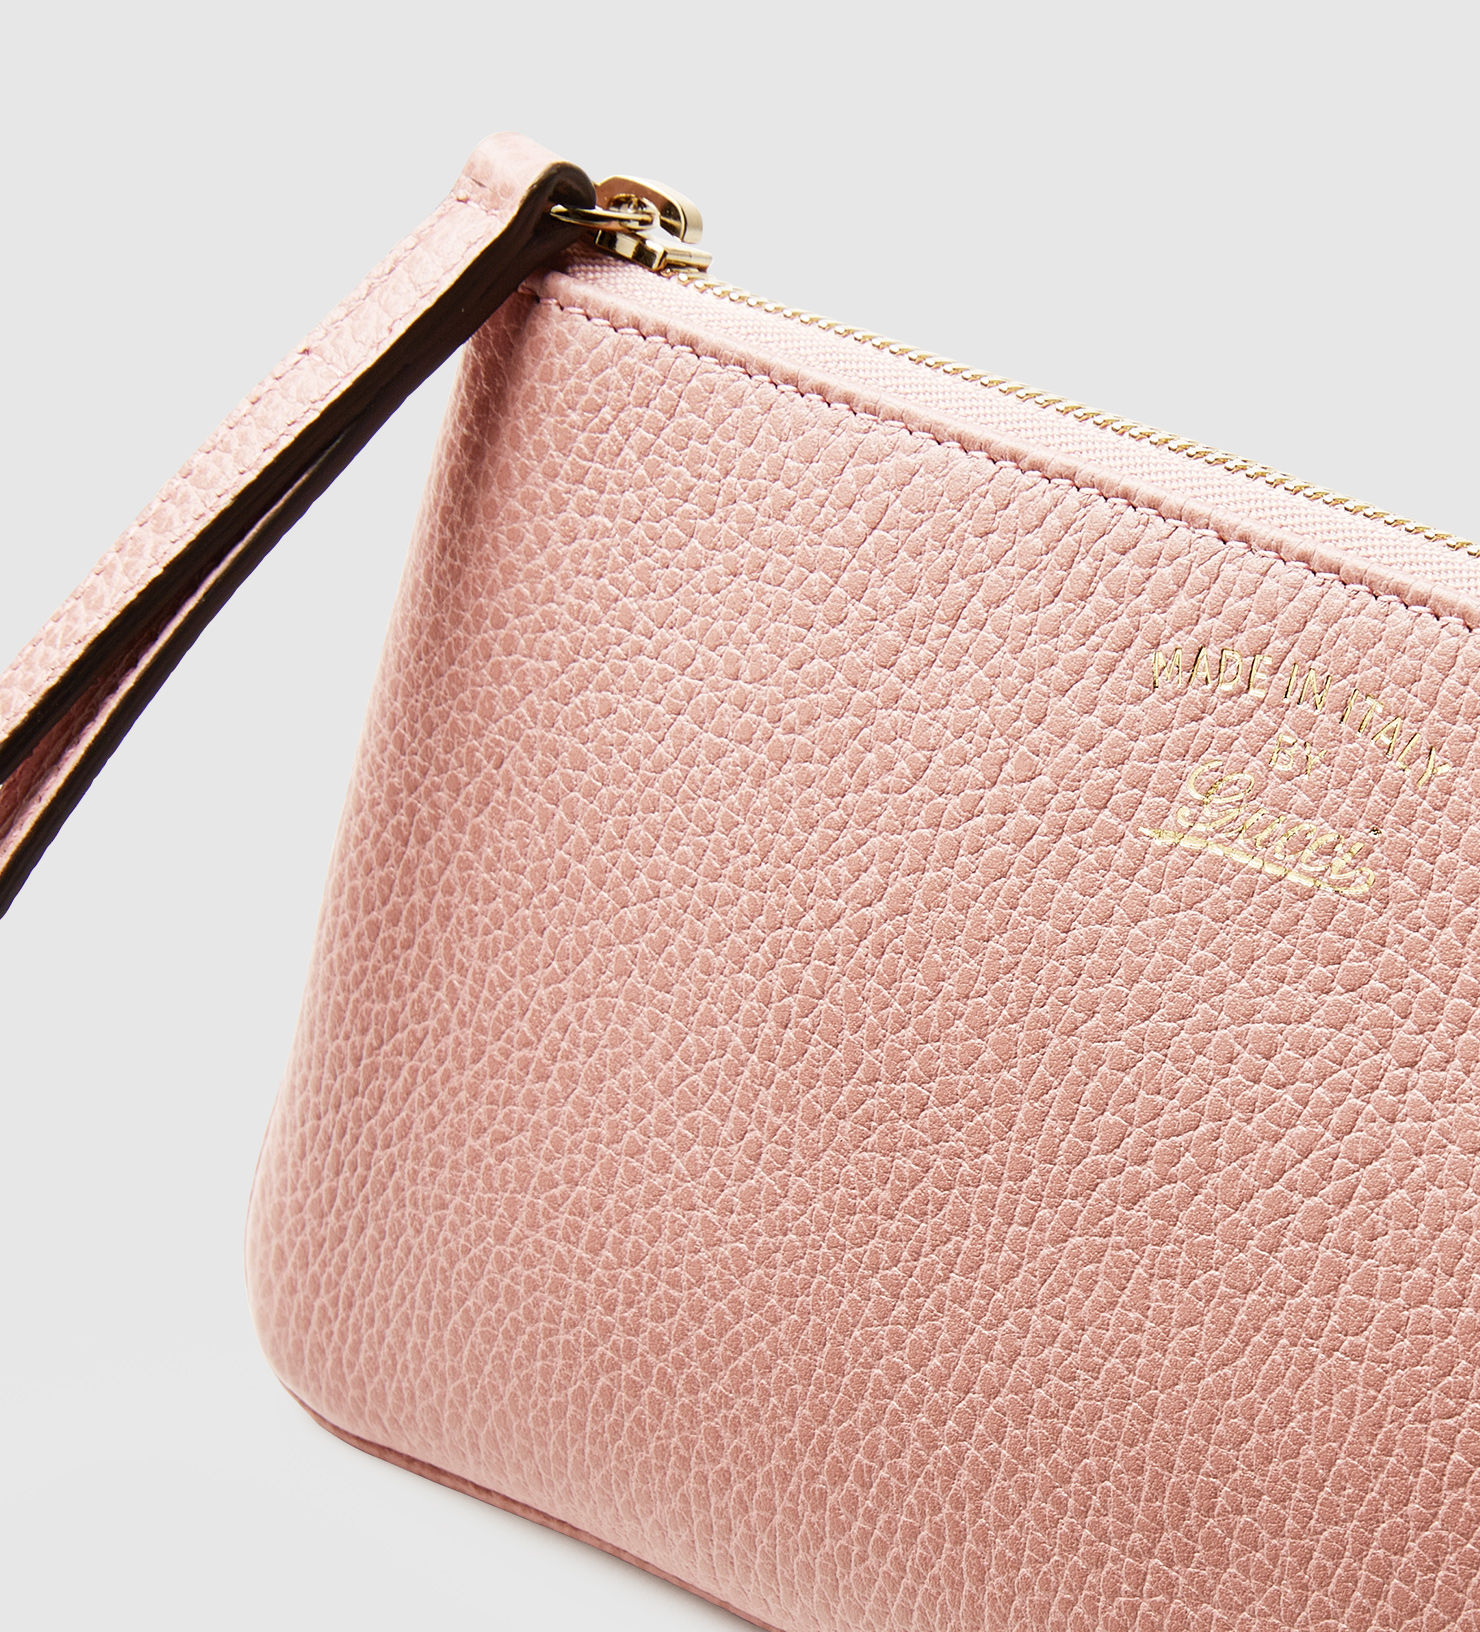 71d5517af72 Gucci Swing Leather Wristlet in Pink - Lyst